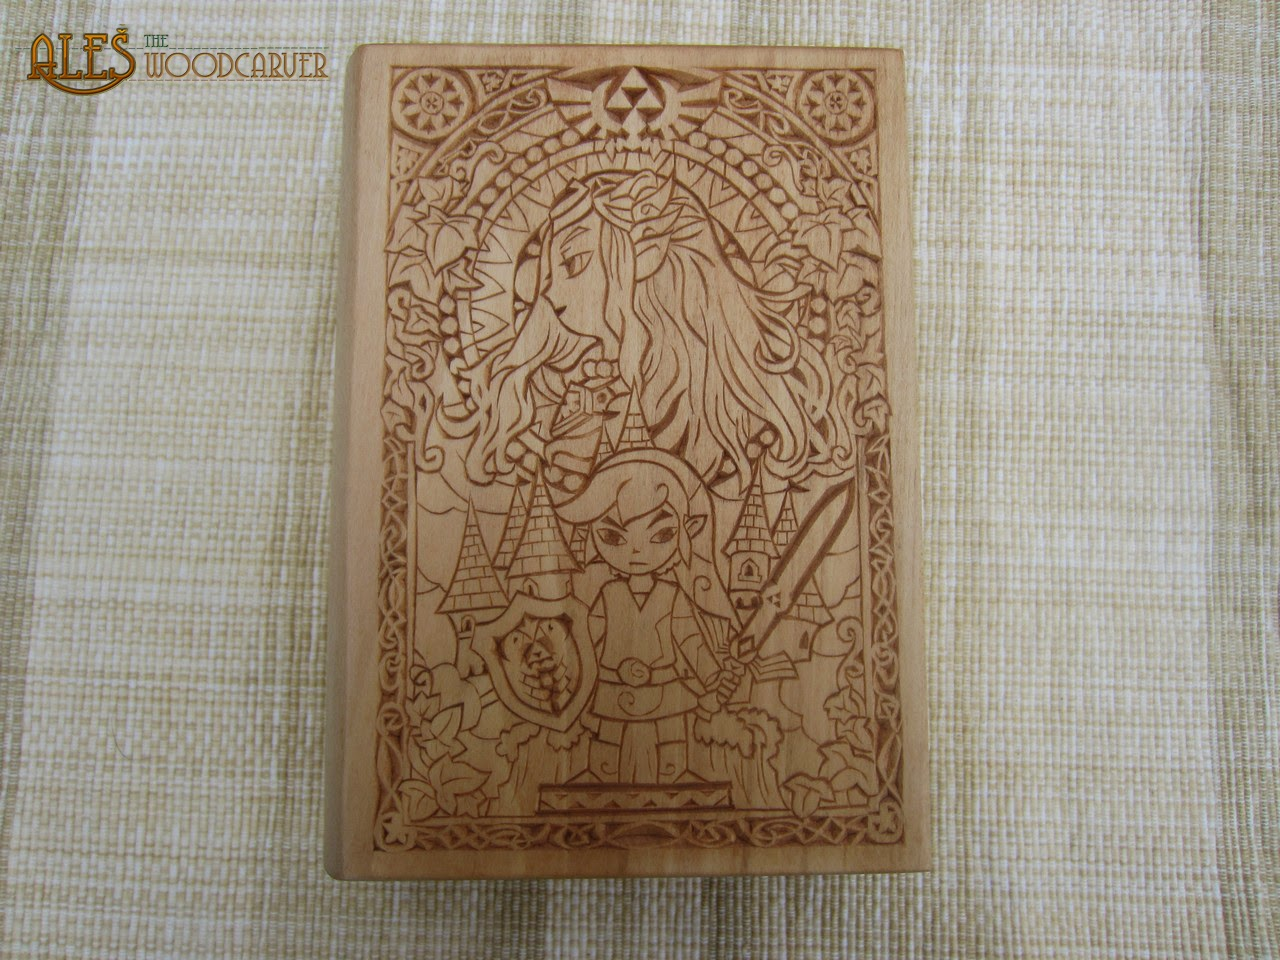 Ales the woodcarver legend of zelda trinket box